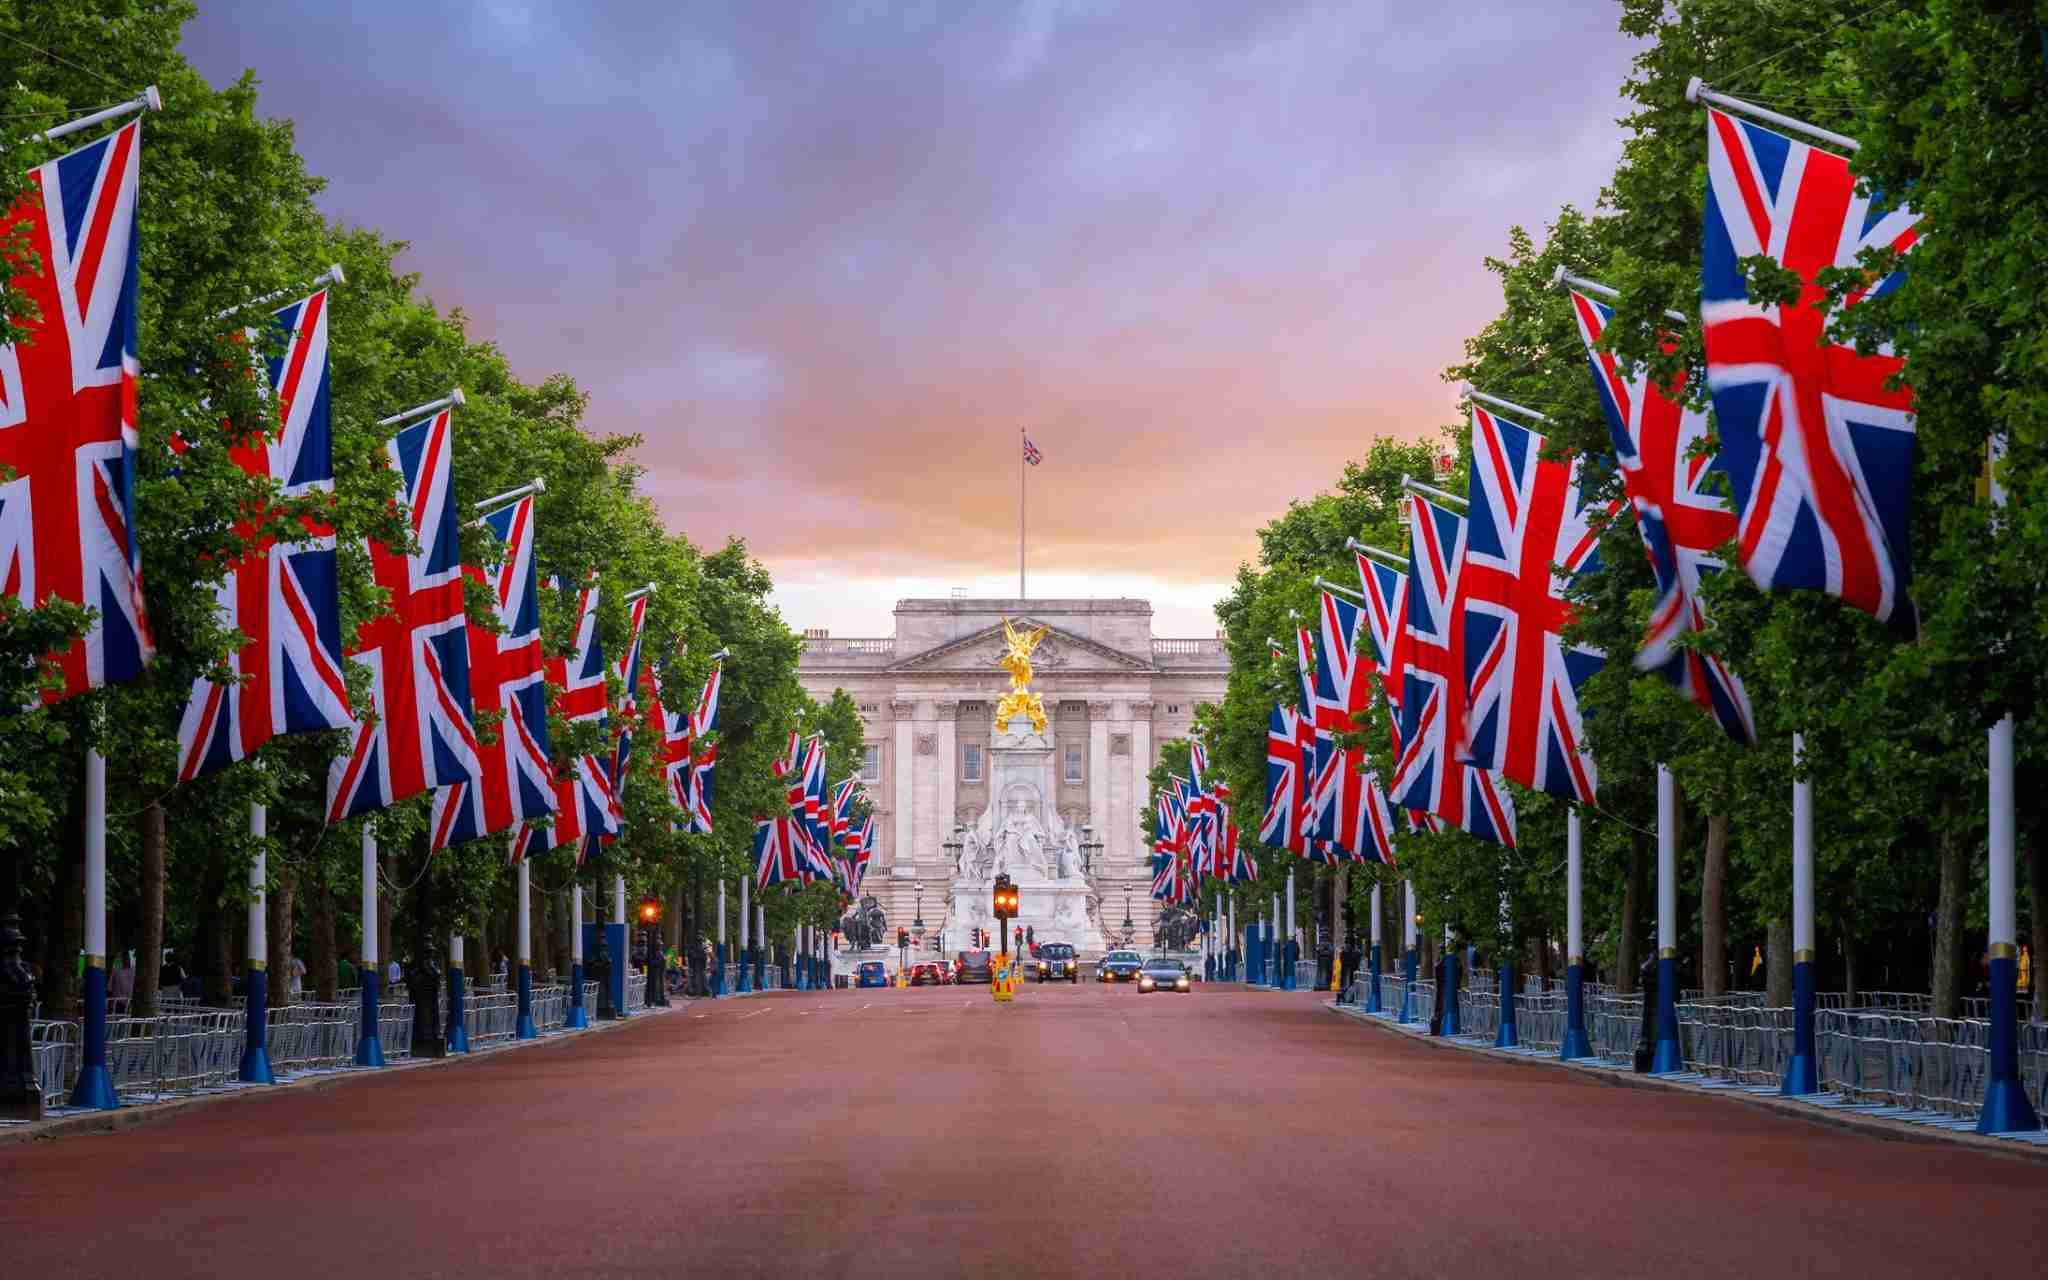 Buckingham Palace, The Mall, Union Flags, London, England. Photo by joe daniel price/ Getty Images